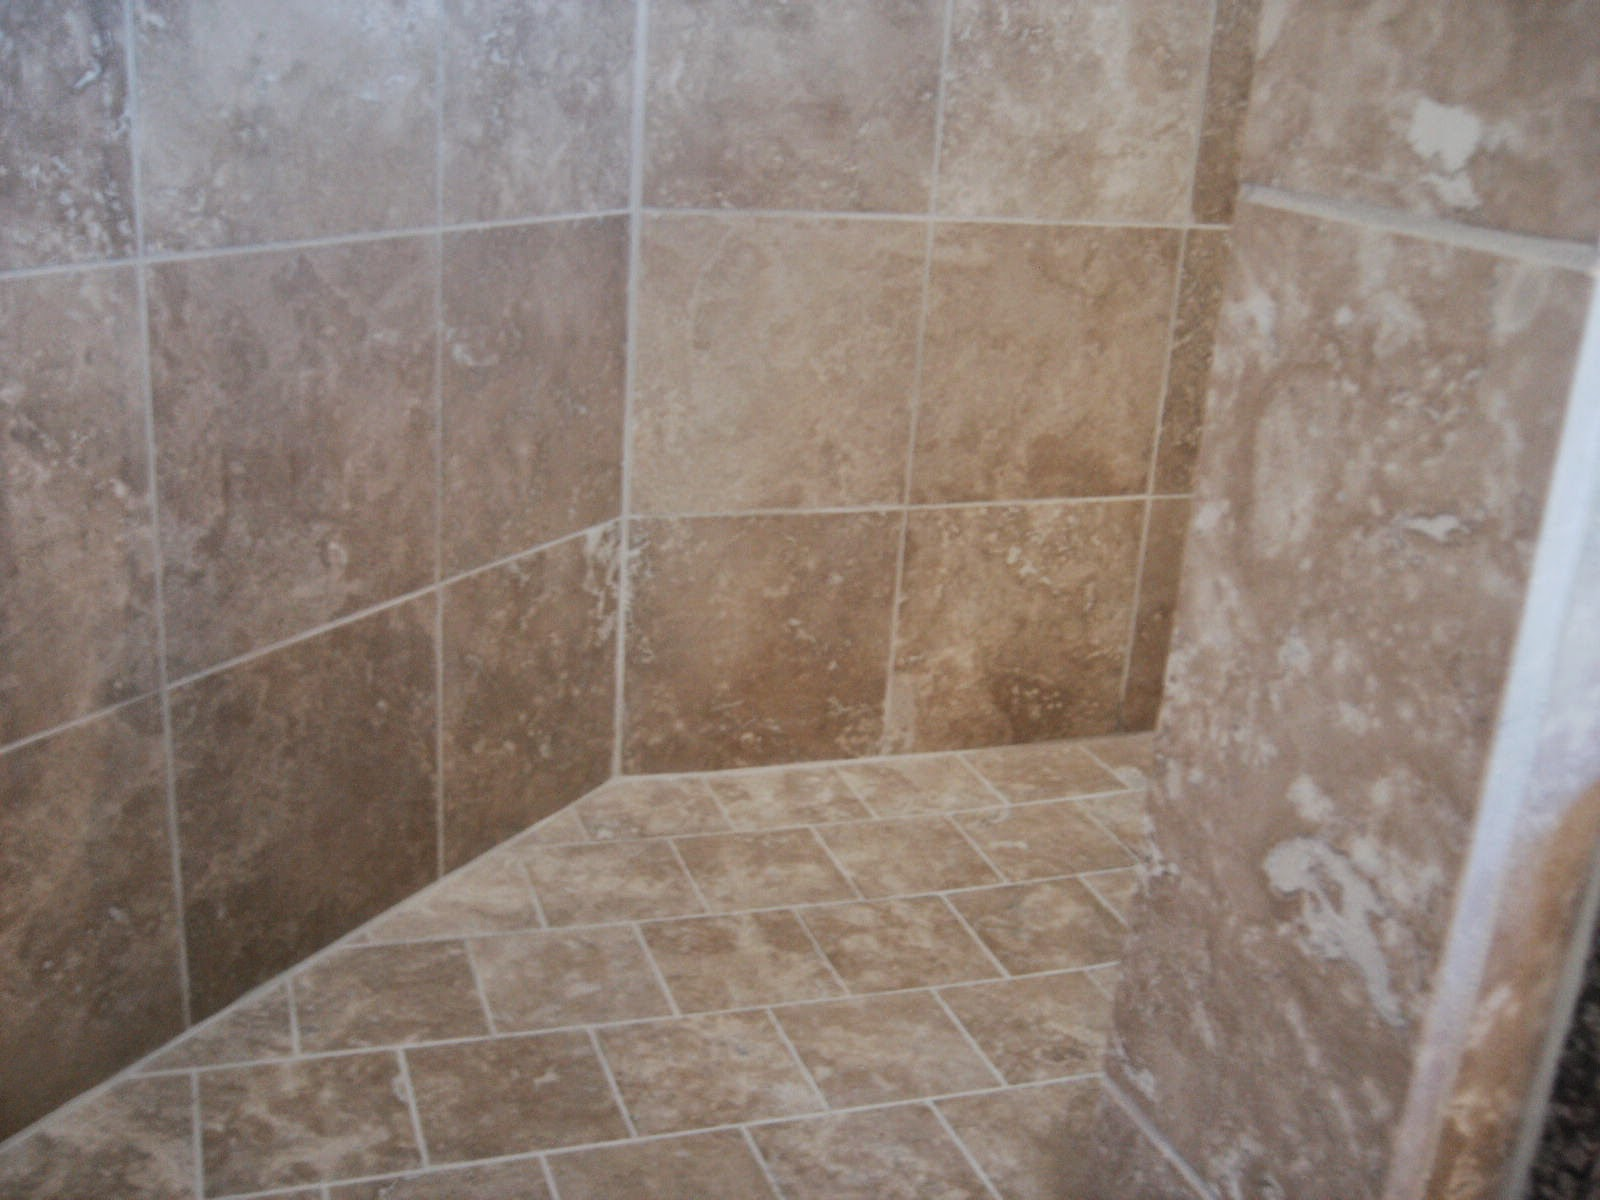 good how to grout tile shower Part - 12: good how to grout tile shower awesome ideas